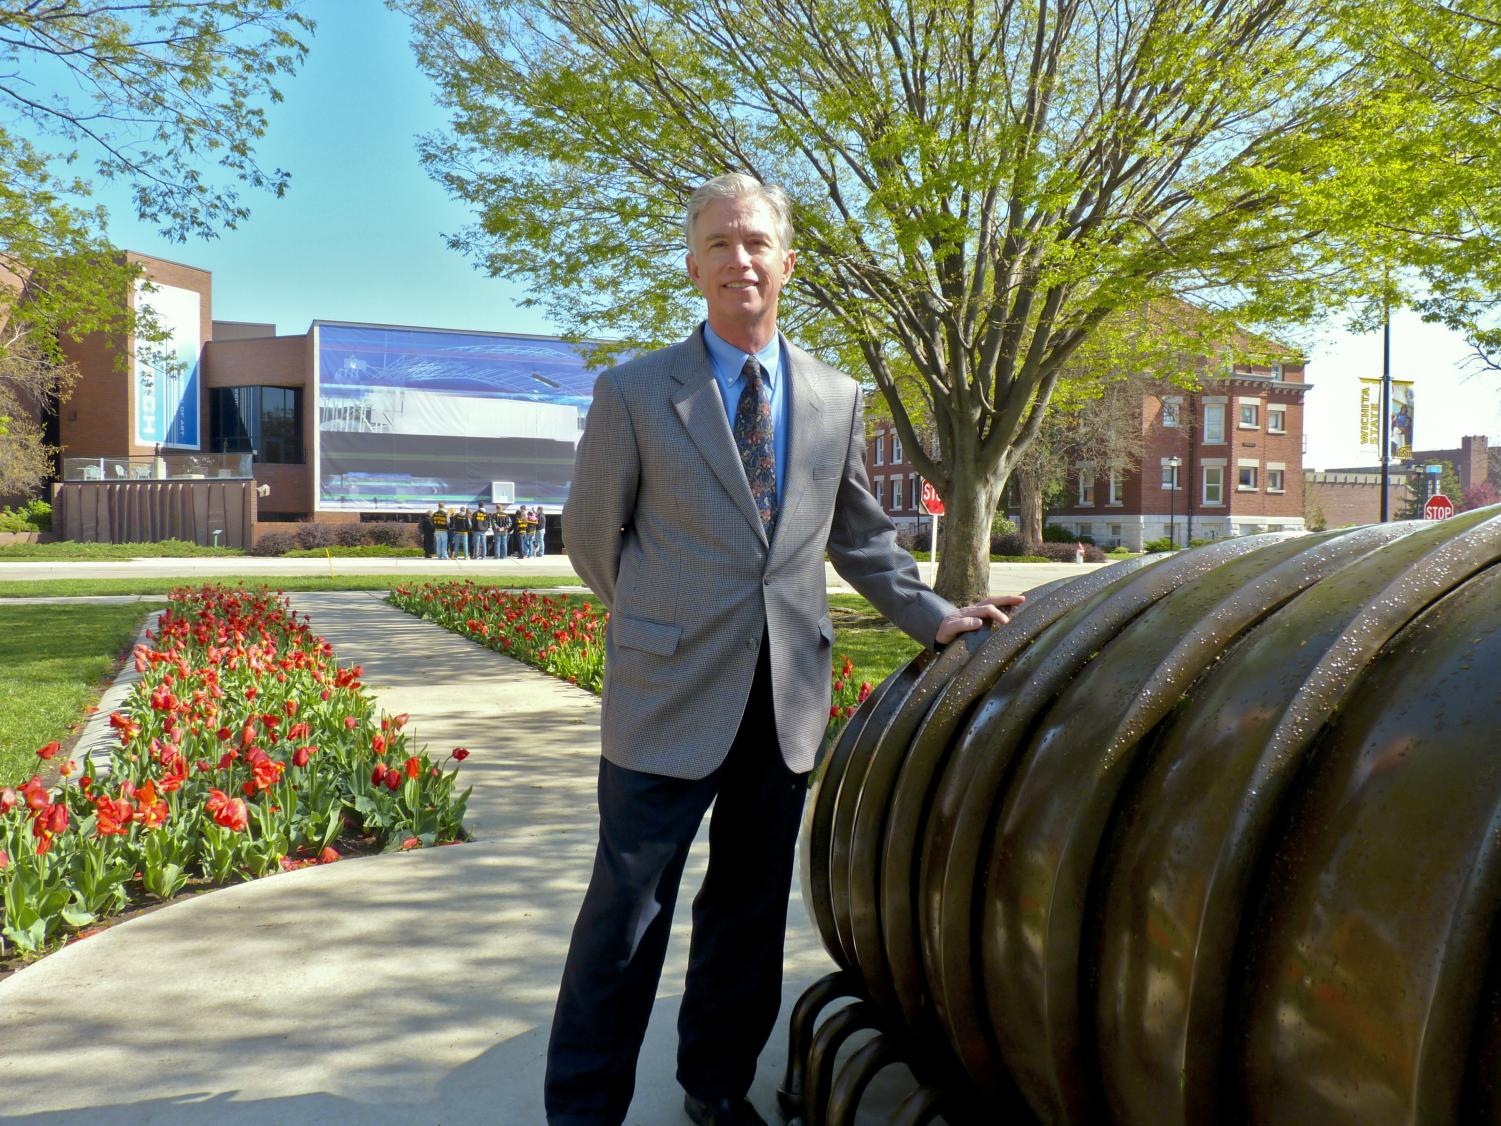 Bob Workman stands in front of the Ulrich Museum of Art, which he directs.